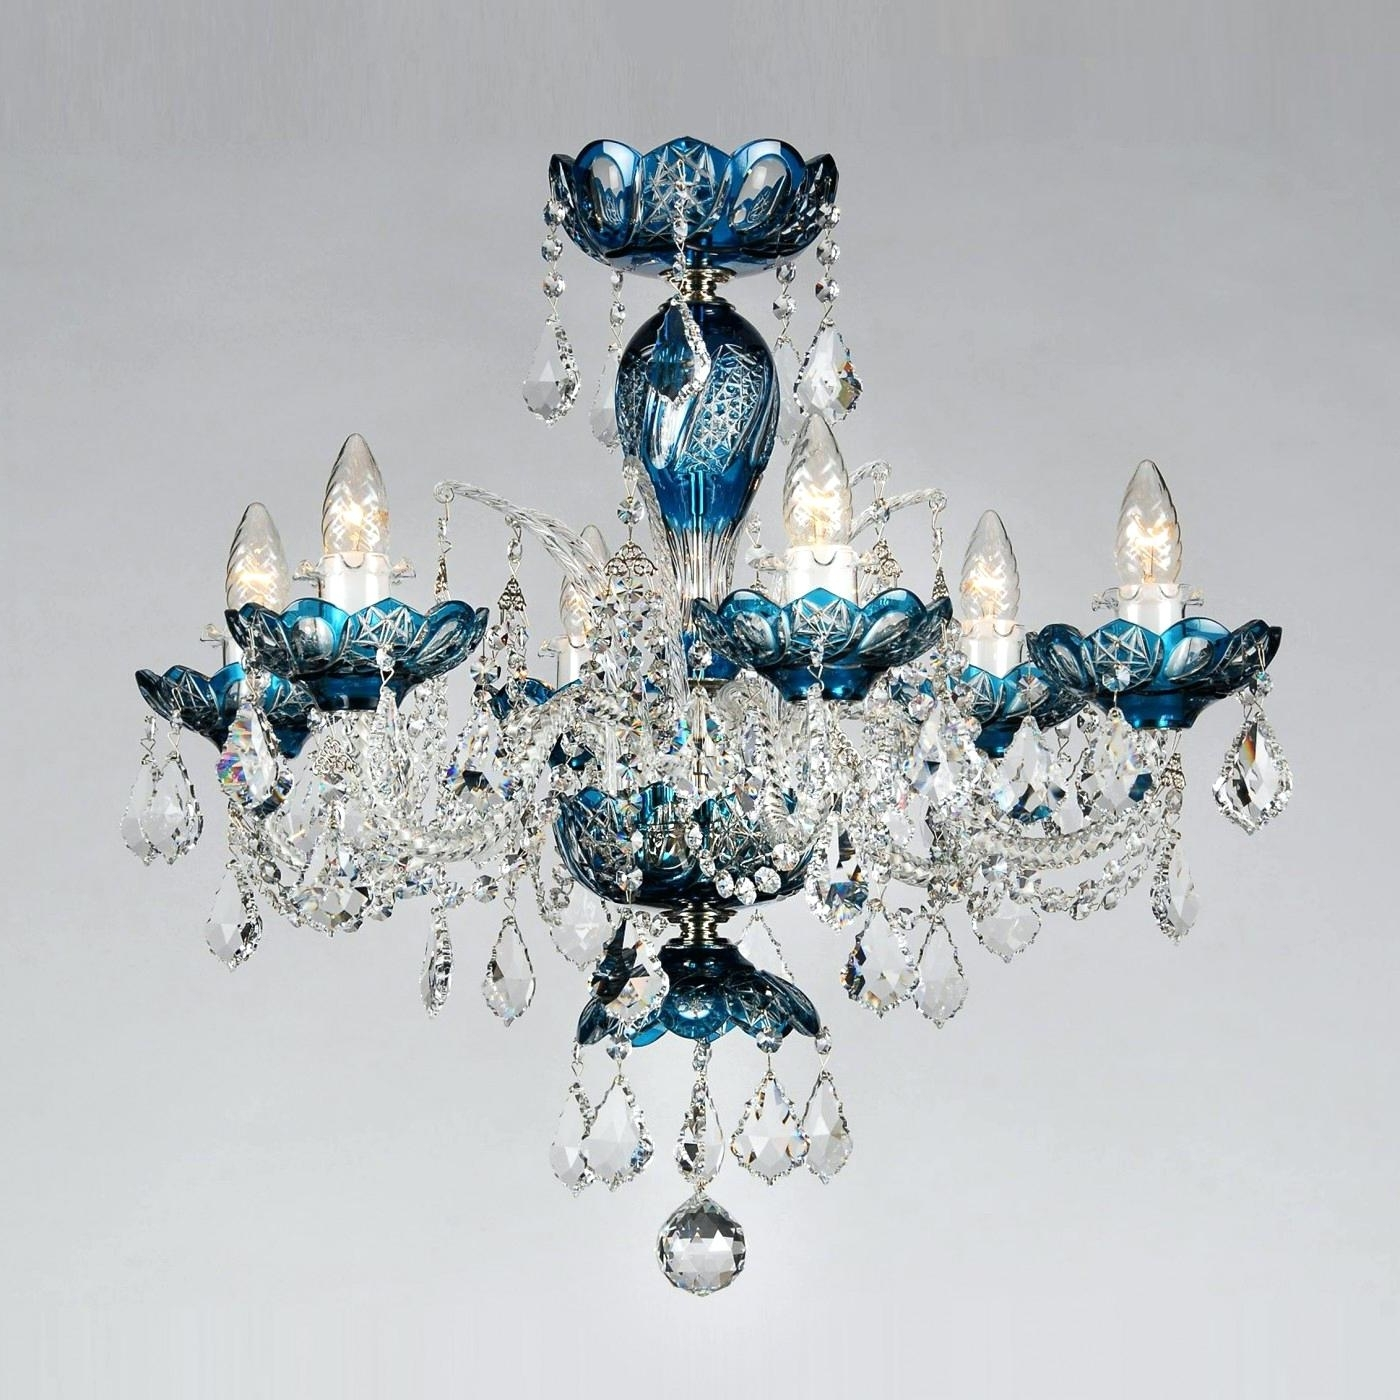 Preferred Chandelier : Turquoise Chandelier Crystals Classic Lighting Light Within Turquoise Chandelier Crystals (View 15 of 20)